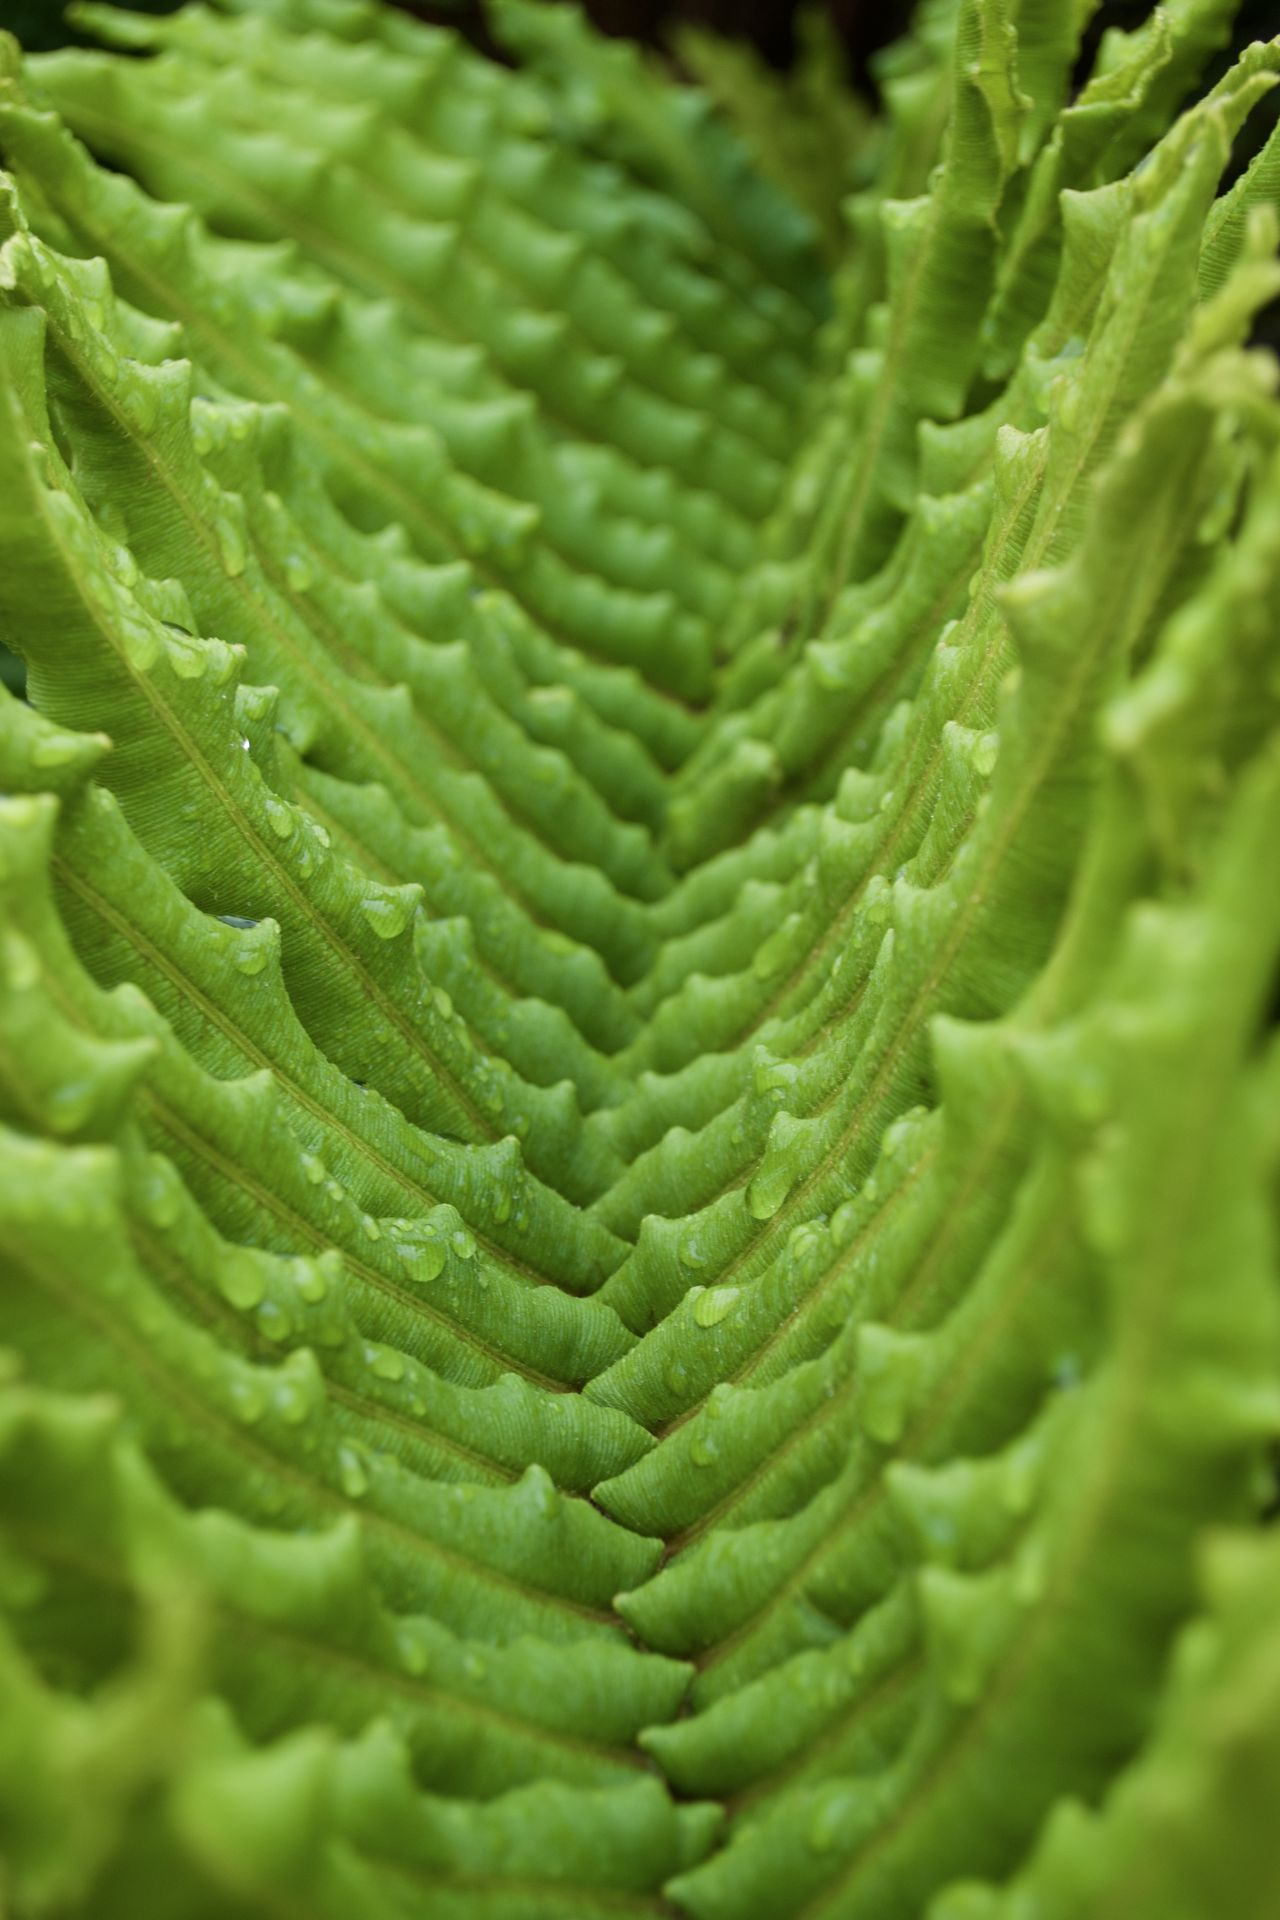 Spiked Valley Close-up Fern Ferns Foliage Foliage, Vegetation, Plants, Green, Leaves, Leafage, Undergrowth, Underbrush, Plant Life, Flora Green Green Color Green Green Green!  Macro Morning Nature Nature Photography Nature_collection Spikes